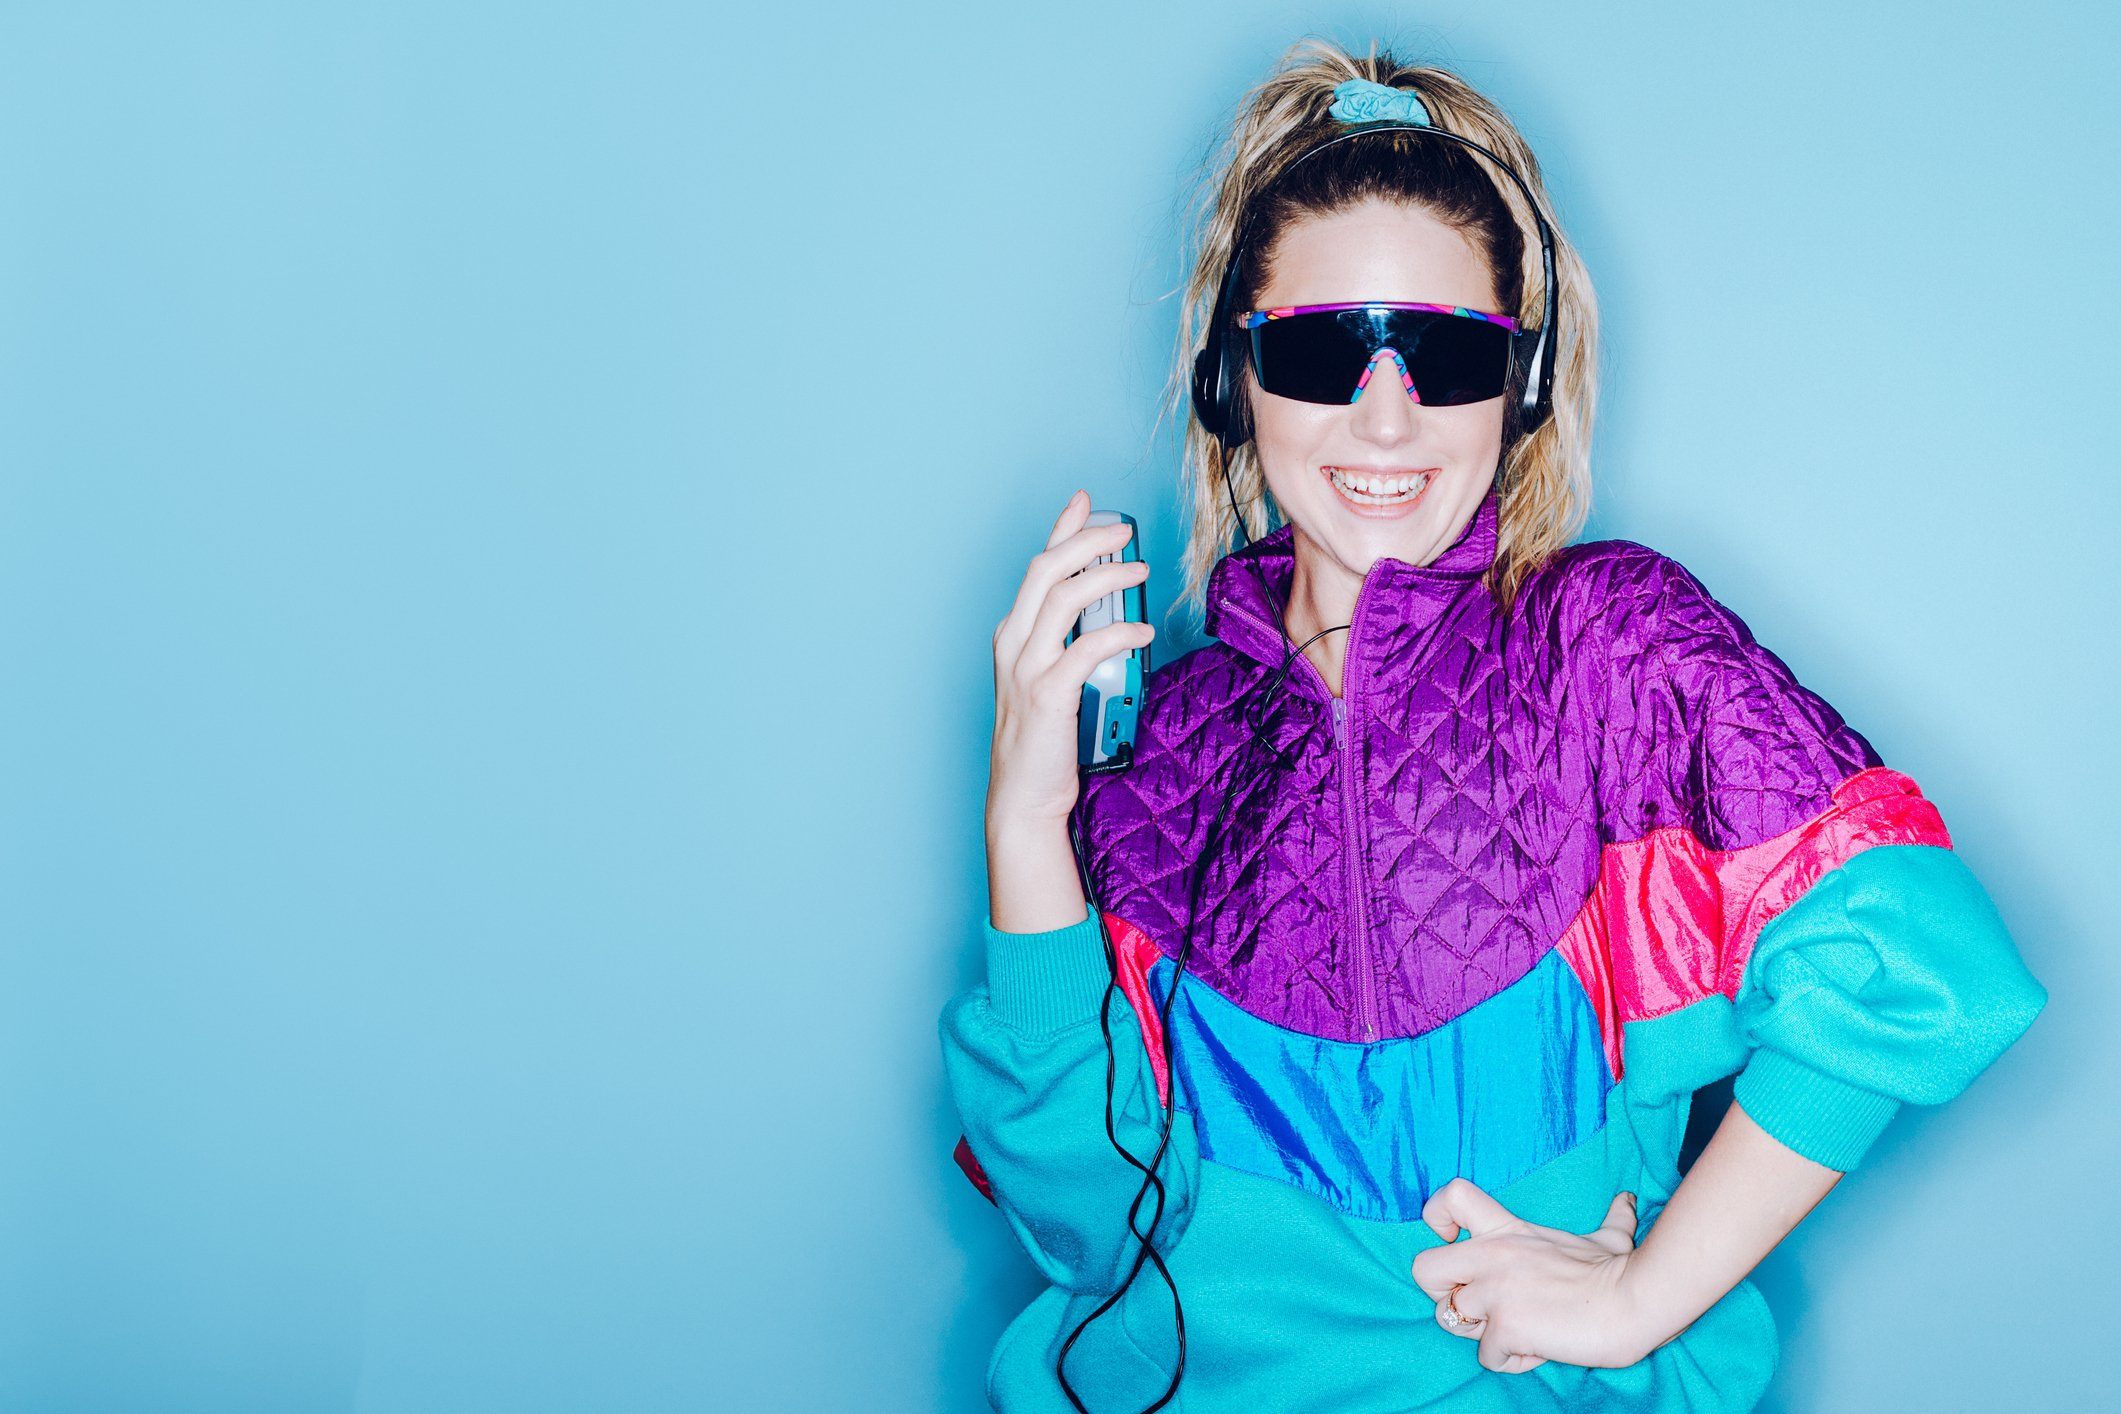 A woman wearing clothing styled after the 1980's and 1990's listens to music on her personal cassette tape player in front of a large bright blue background. Shot with a ring flash.